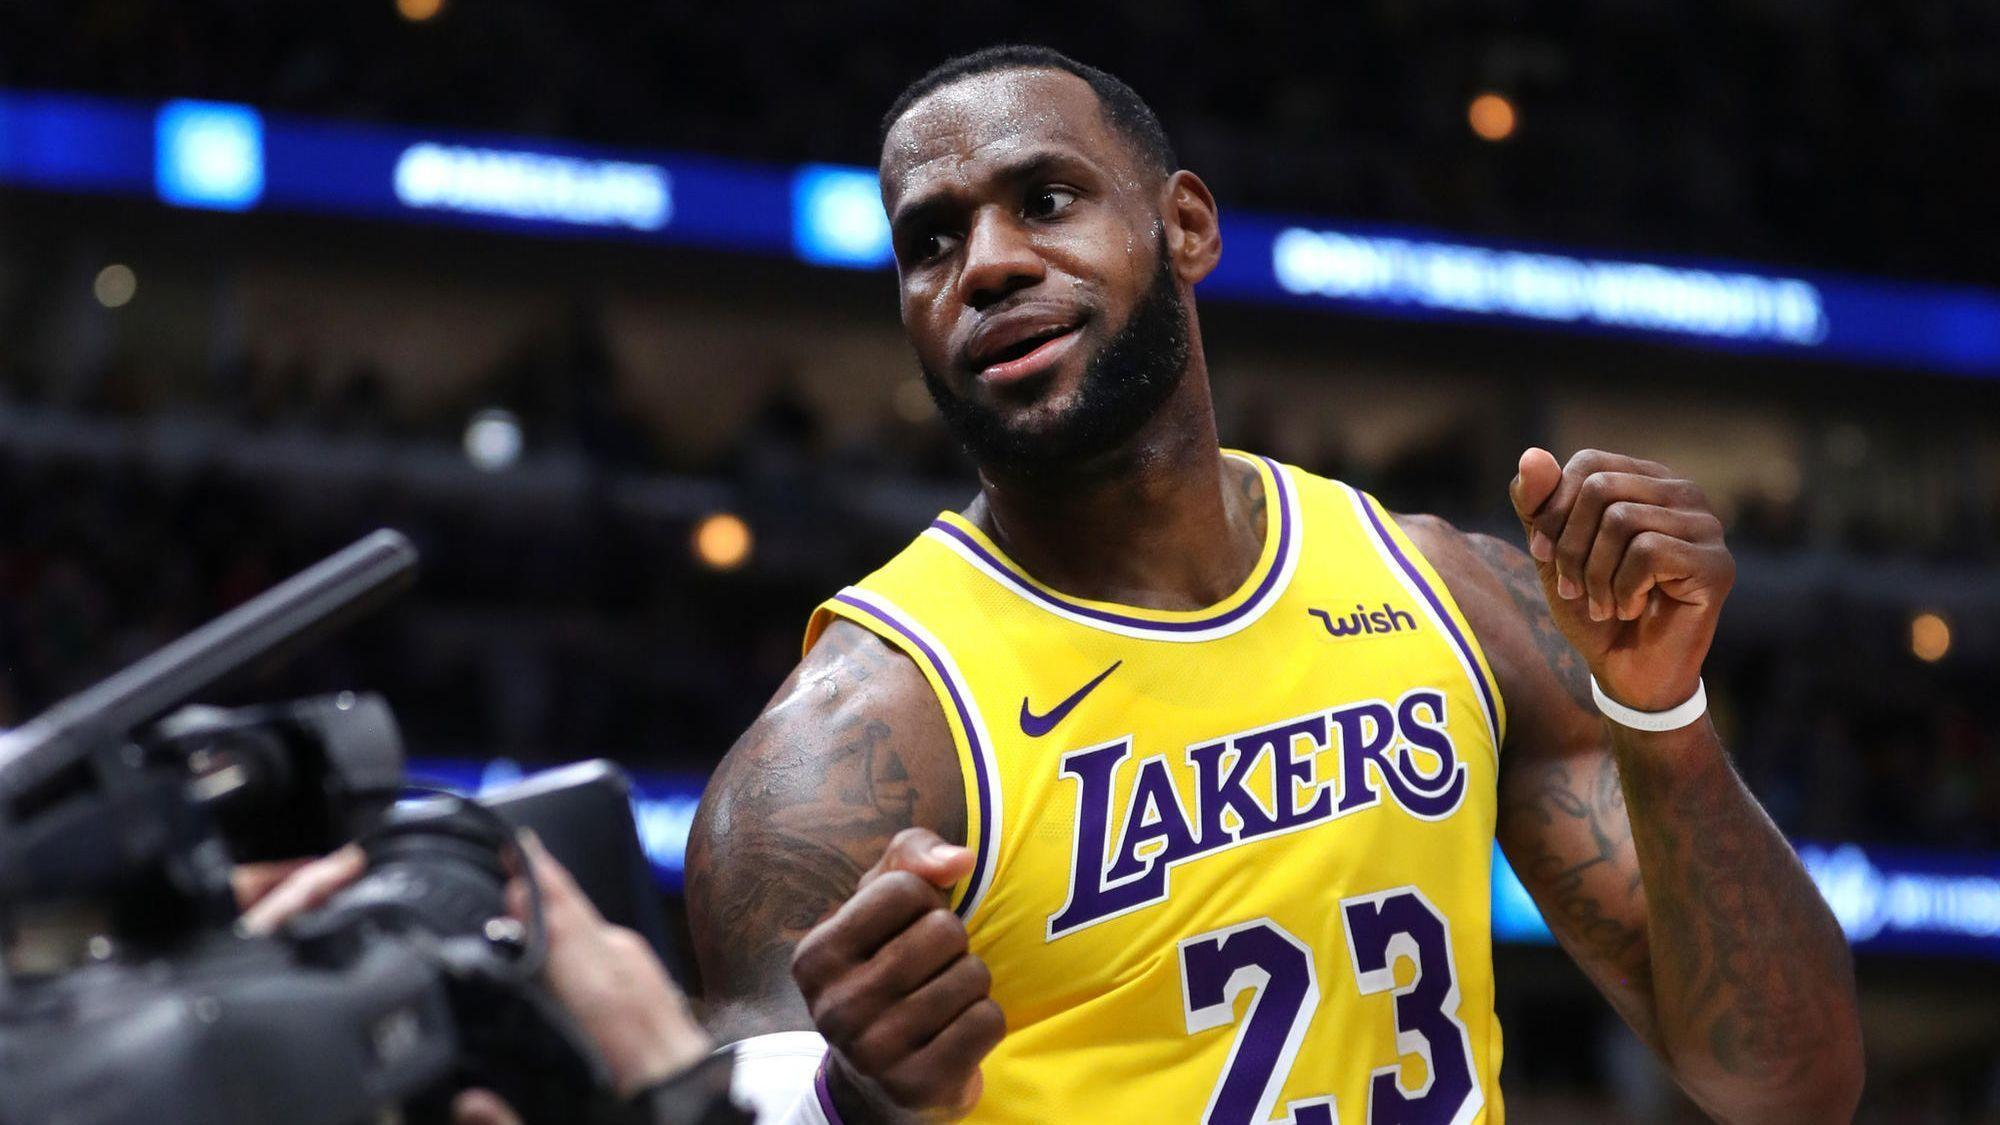 590a56b1ae61 LeBron James puts on a show in a 123-107 Lakers win that officially  eliminates the Bulls from the playoffs - Chicago Tribune